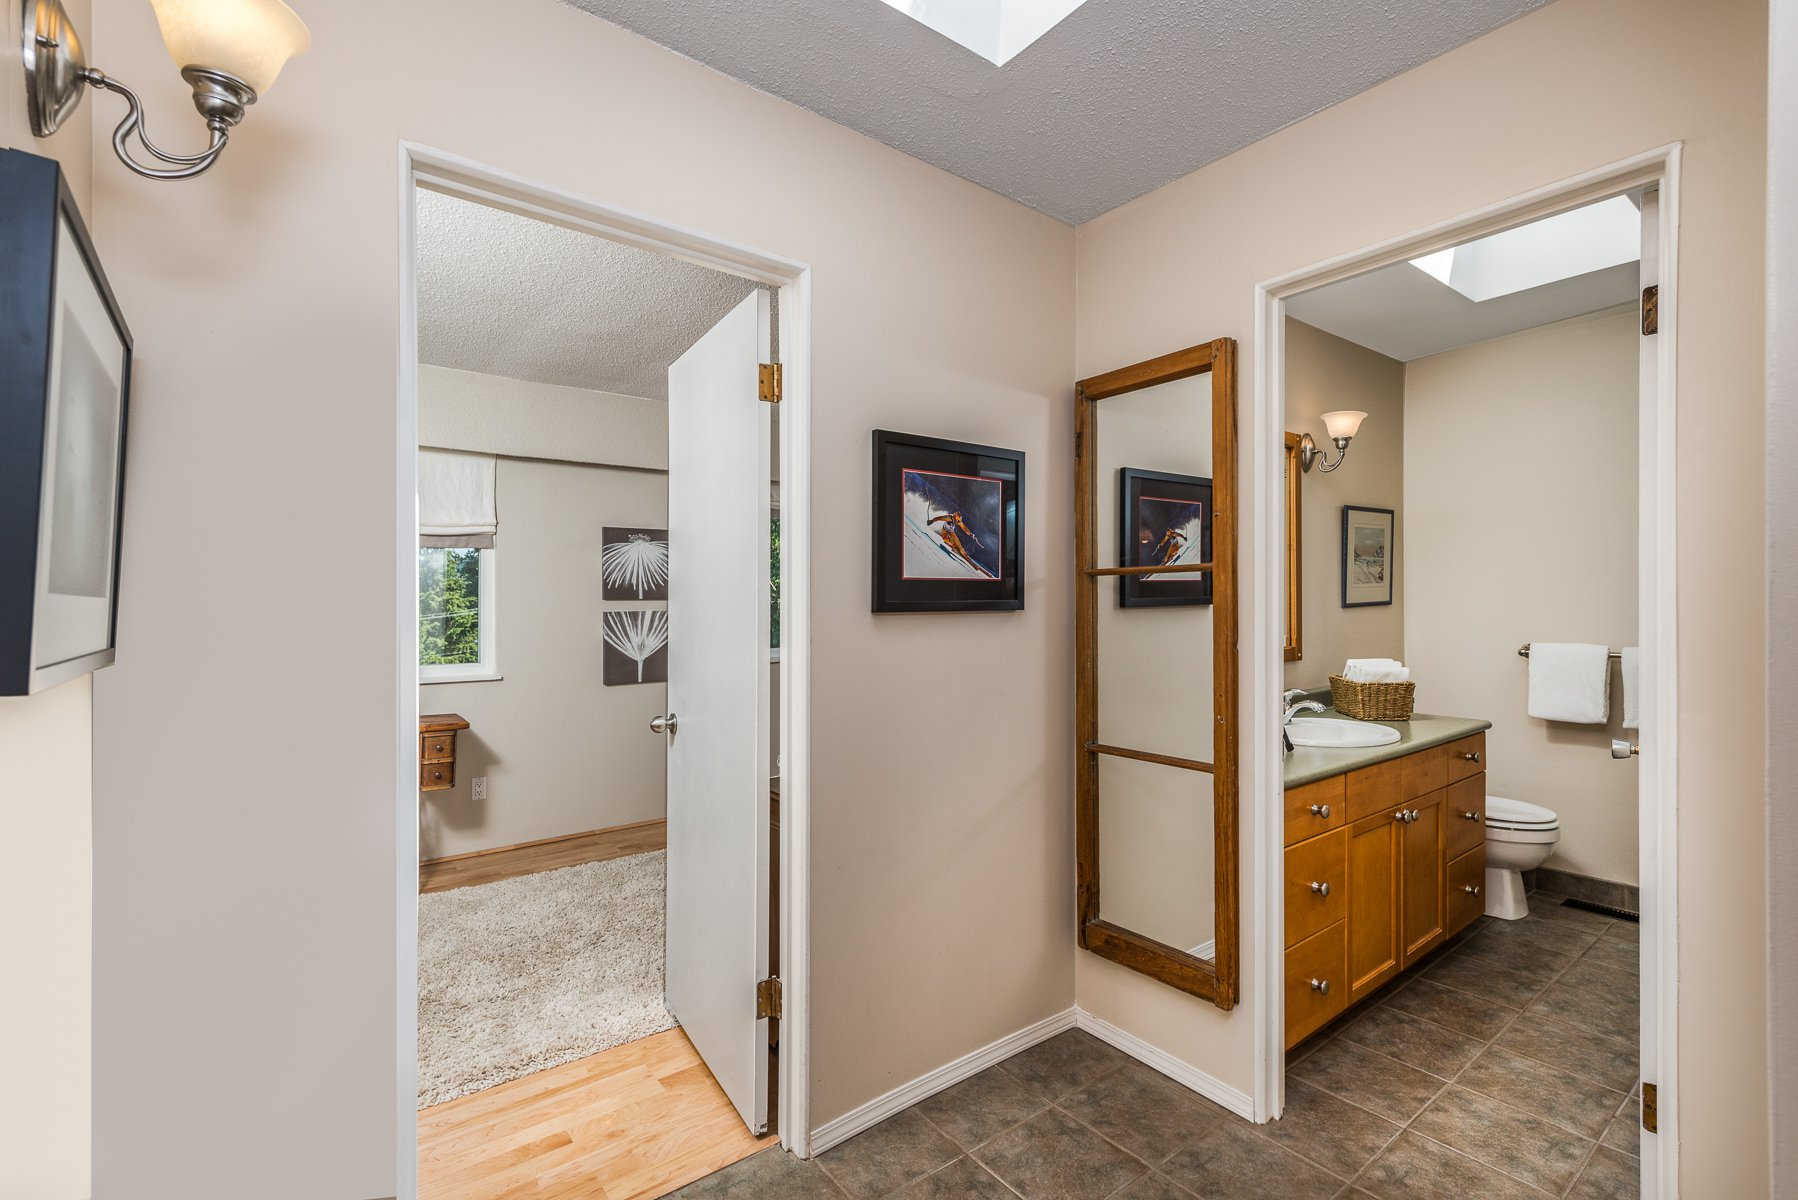 Photo 15: Photos: 1196 DEEP COVE Road in North Vancouver: Deep Cove Townhouse for sale : MLS®# R2279421